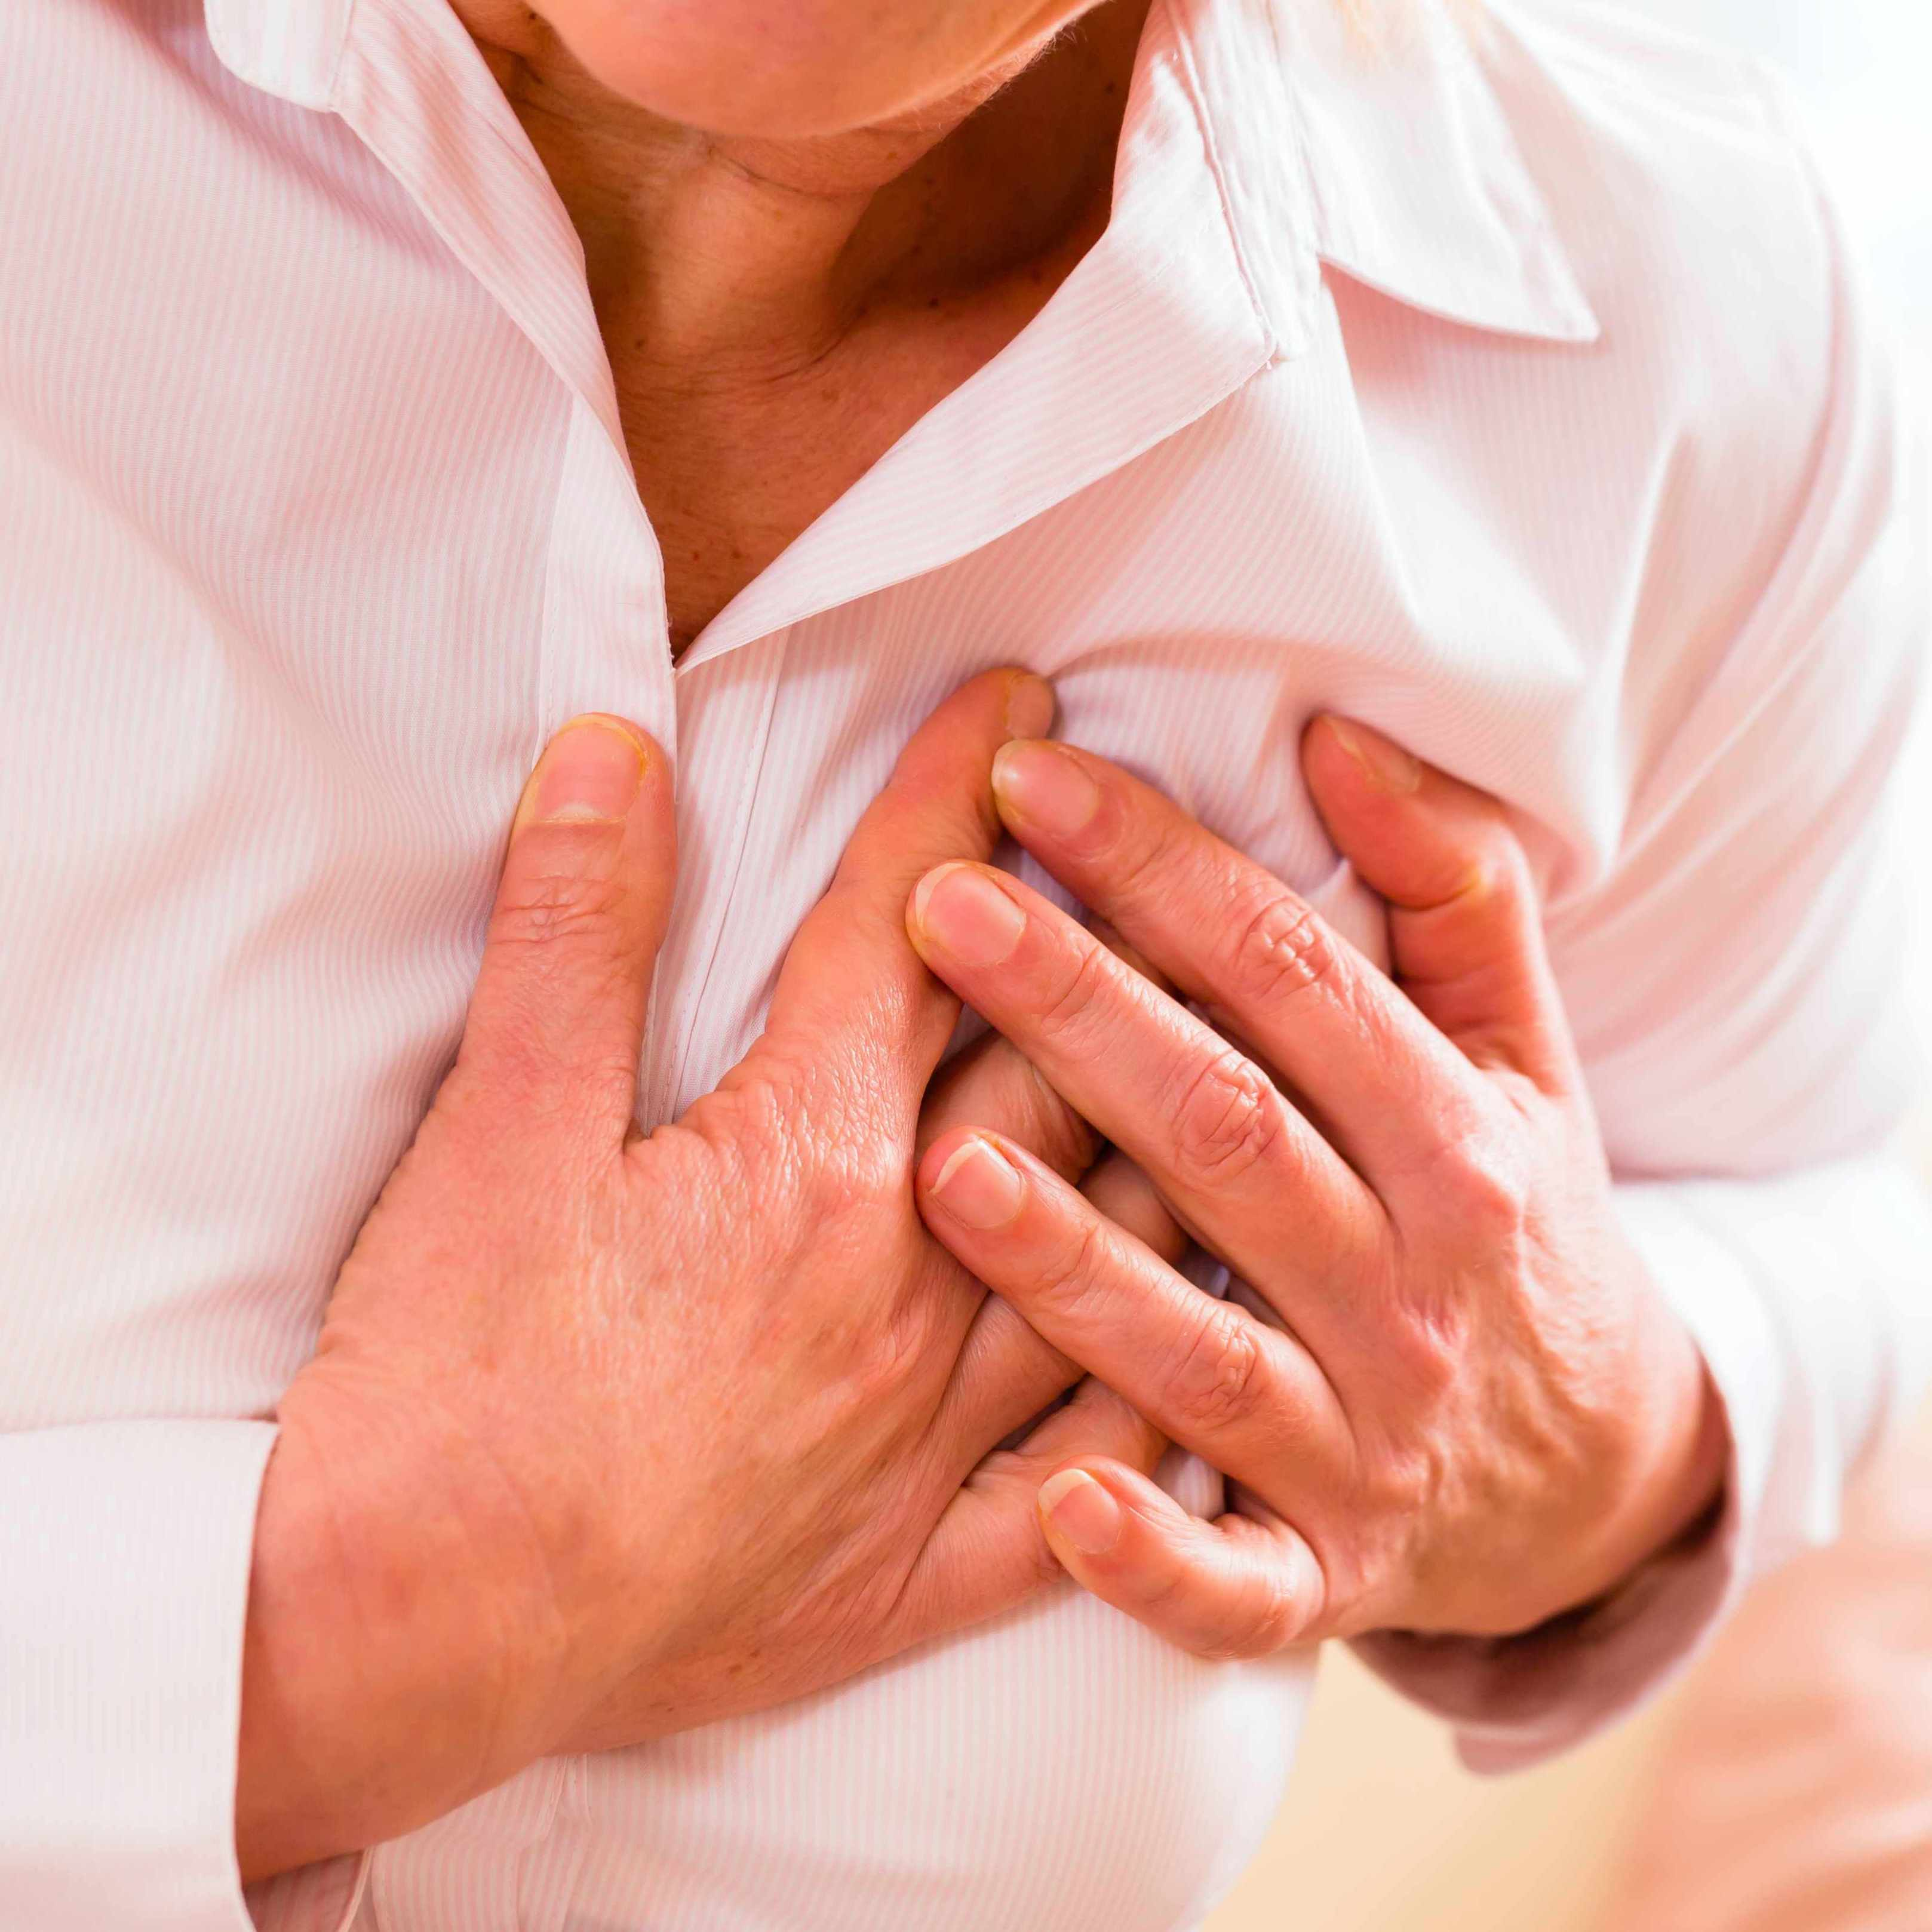 a woman in a pink blouse clutching her chest as if in pain or having a heart attack